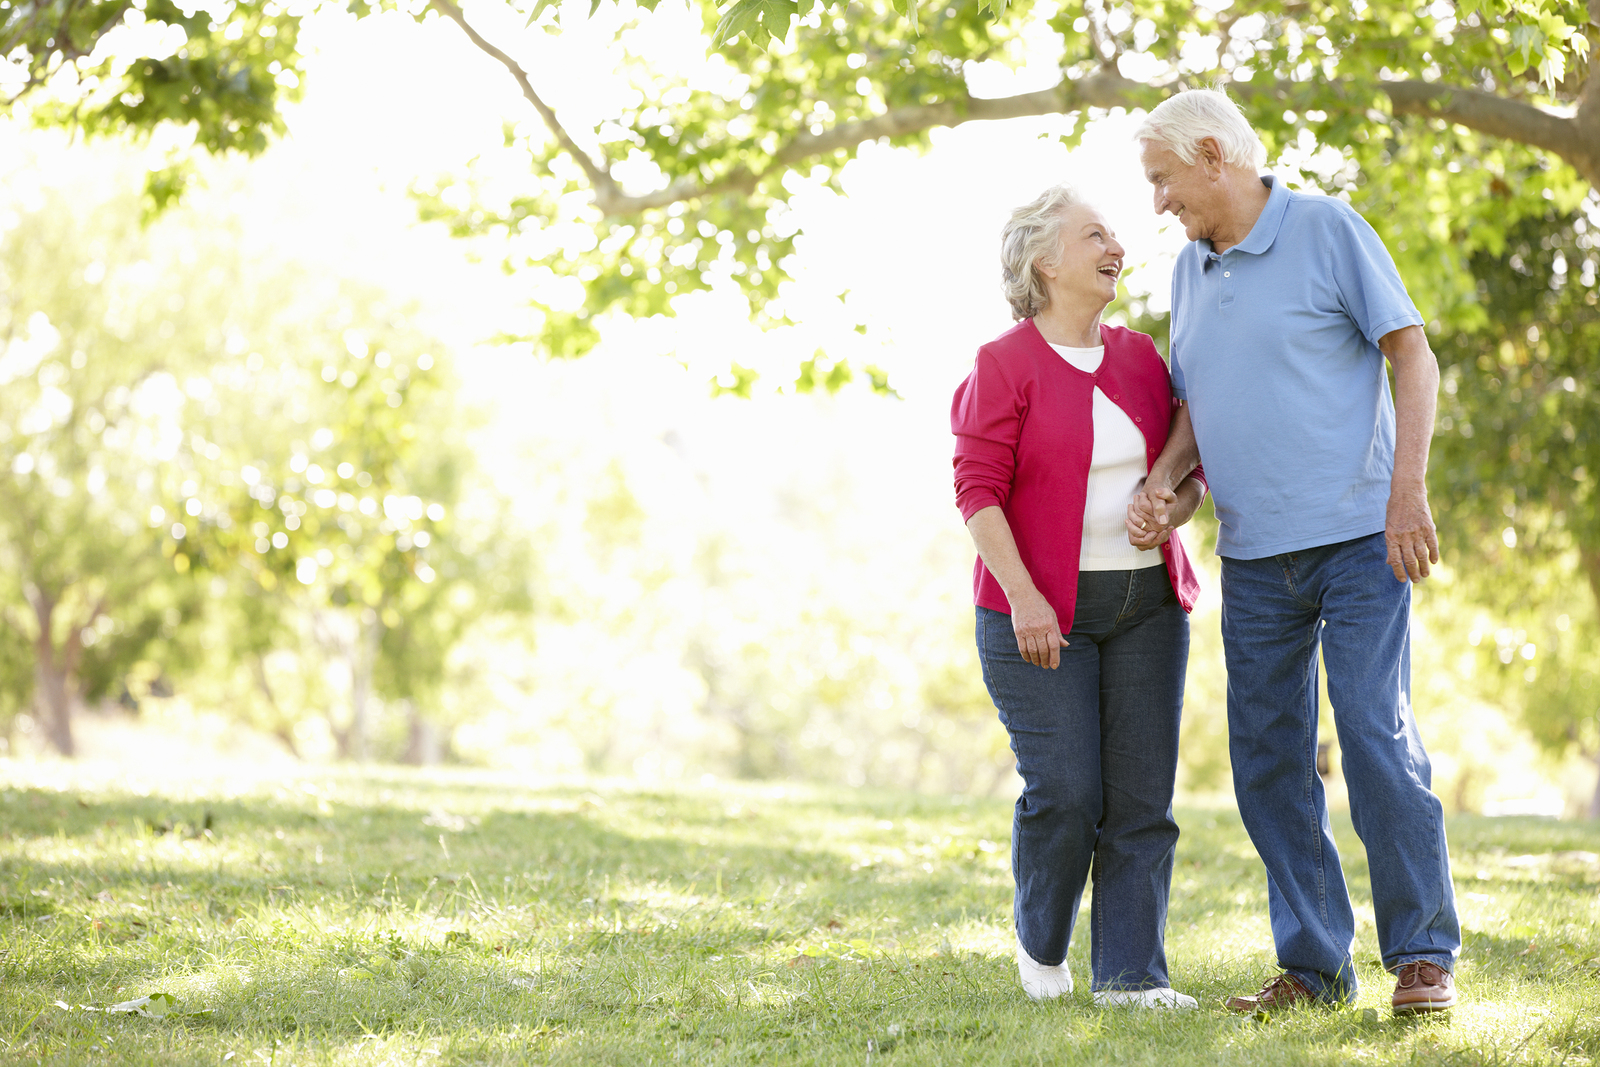 Elderly couple holding hands walking through a park